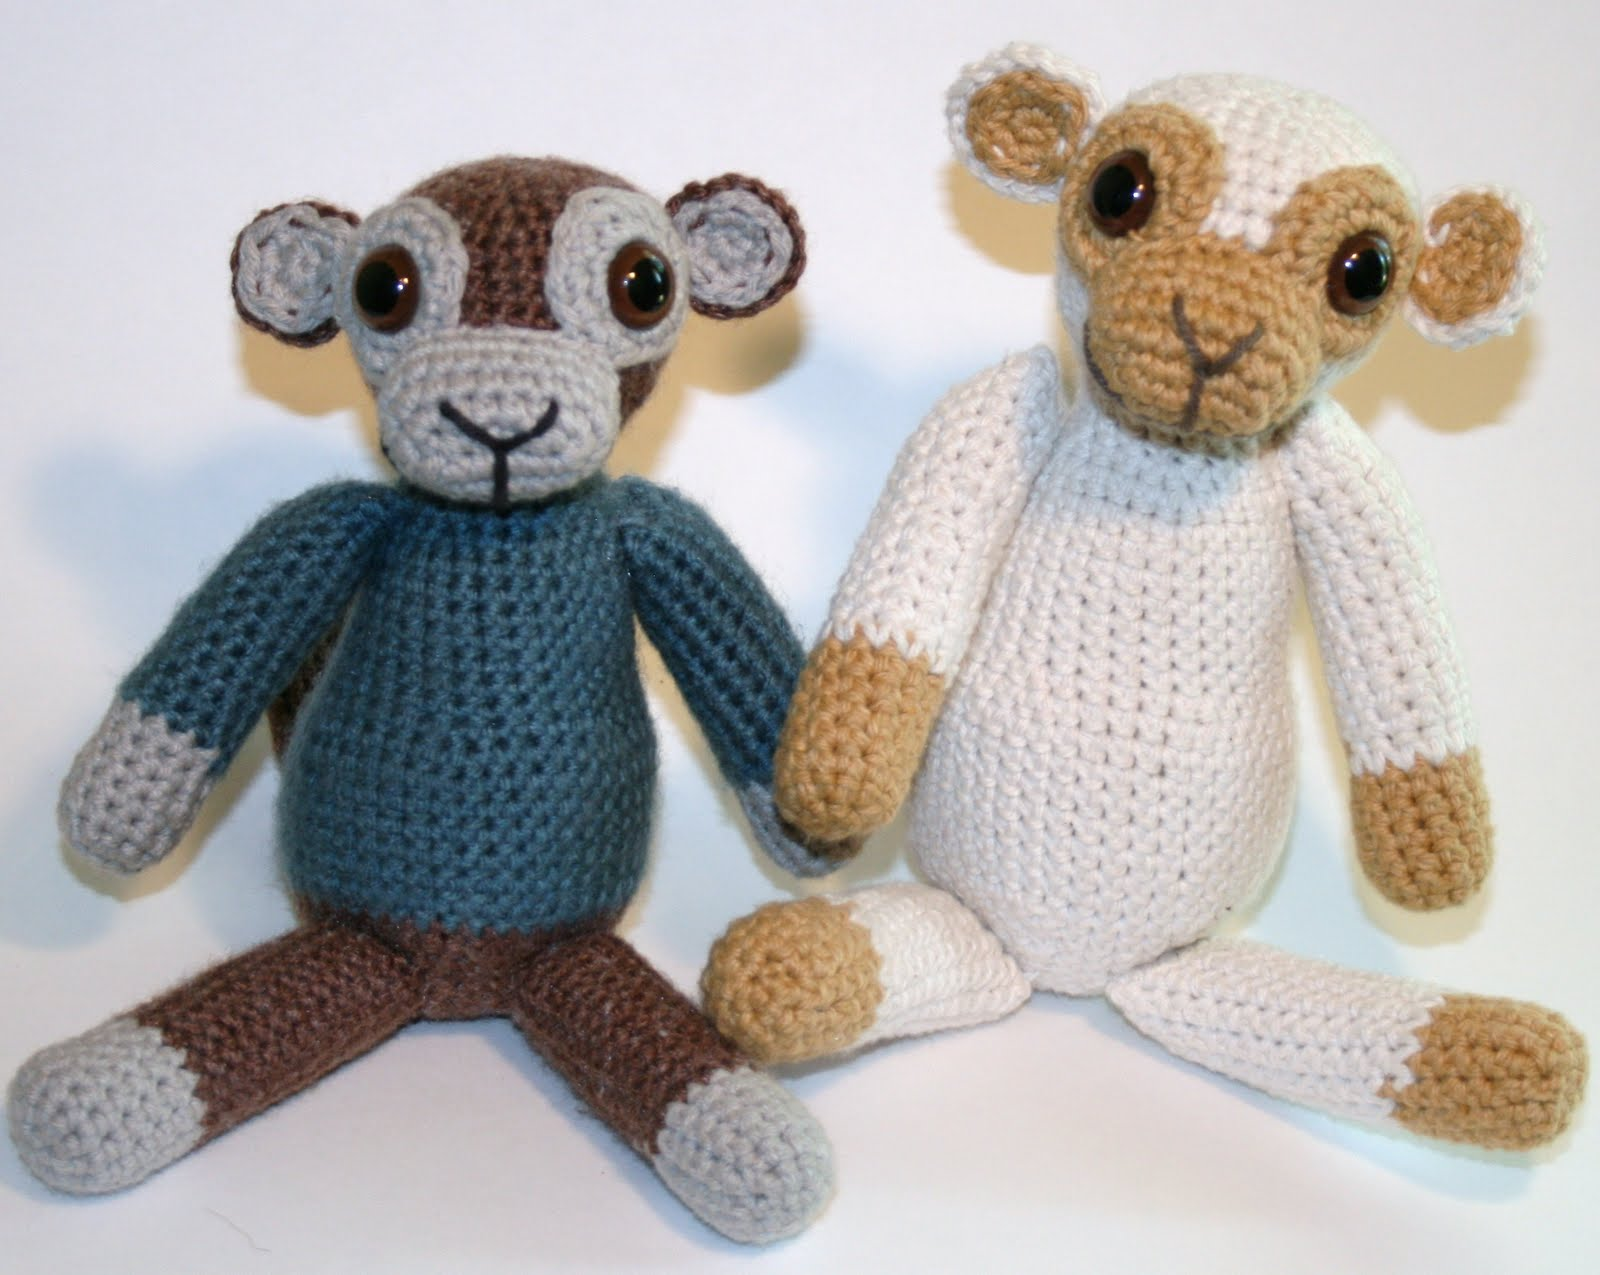 Amigurumi To Go Monkey : 2000 Free Amigurumi Patterns: Old School Monkey Amigurumi